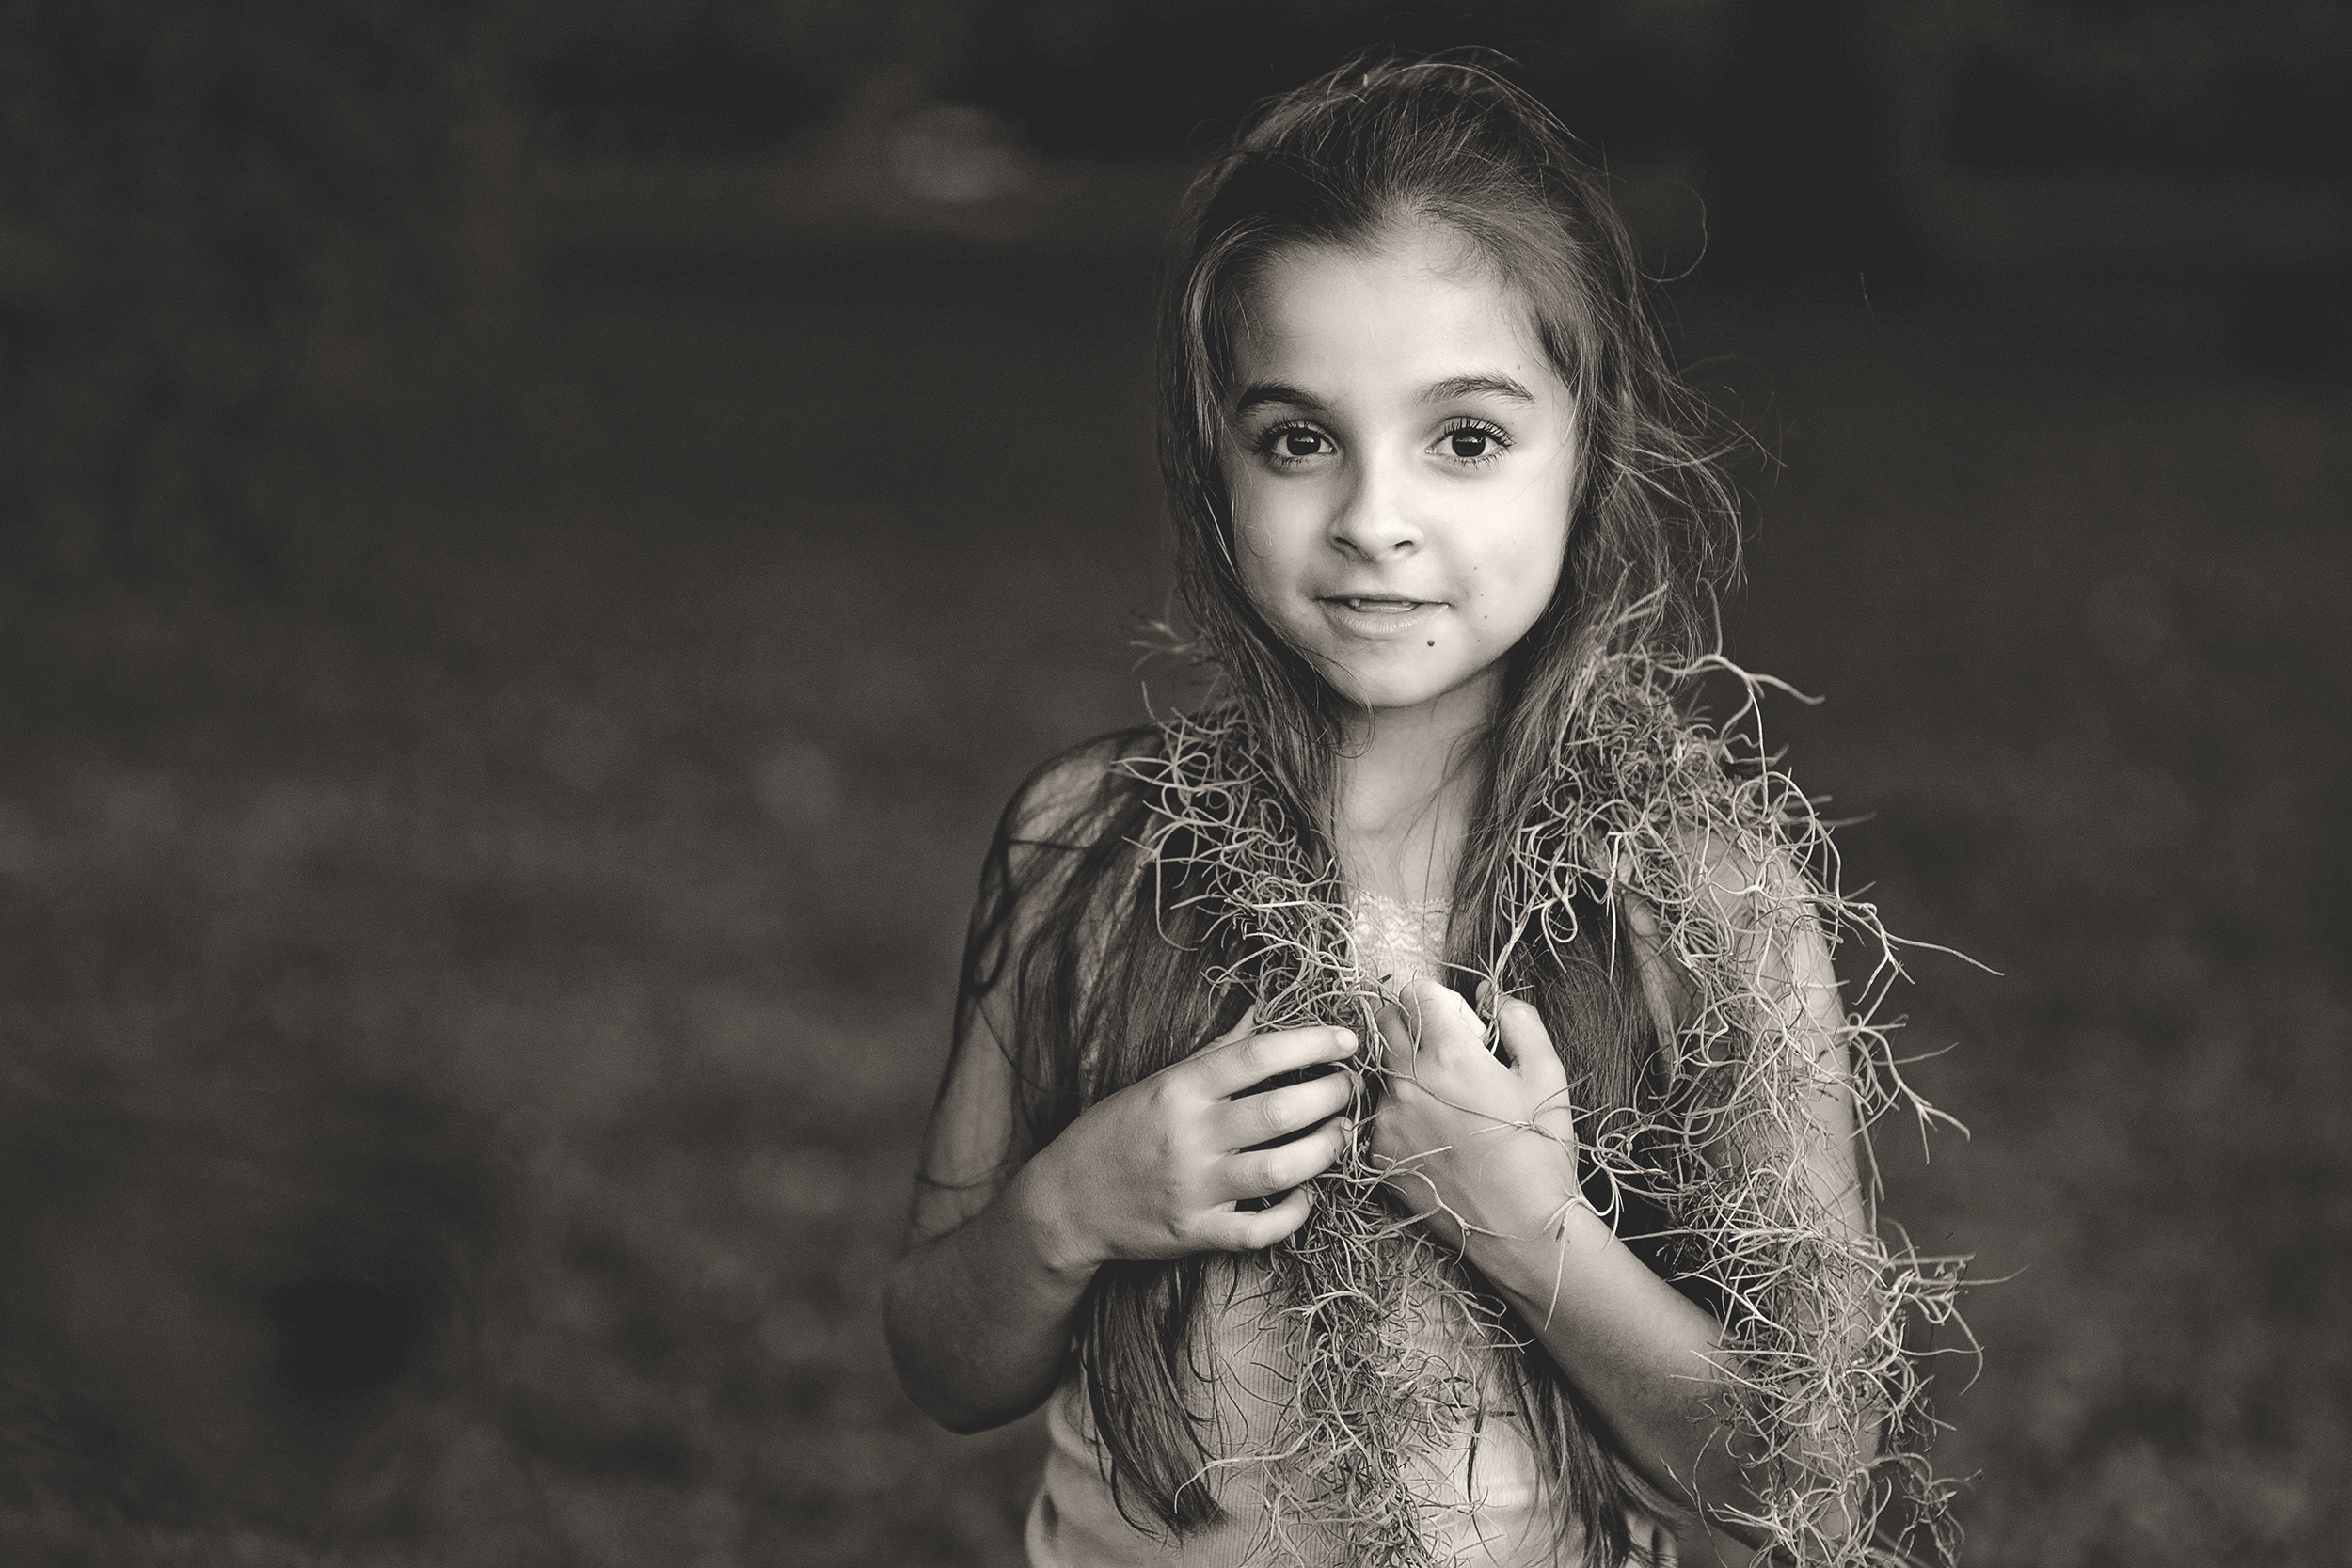 child-photography-south-florida-alison-frank-photography_02.jpg